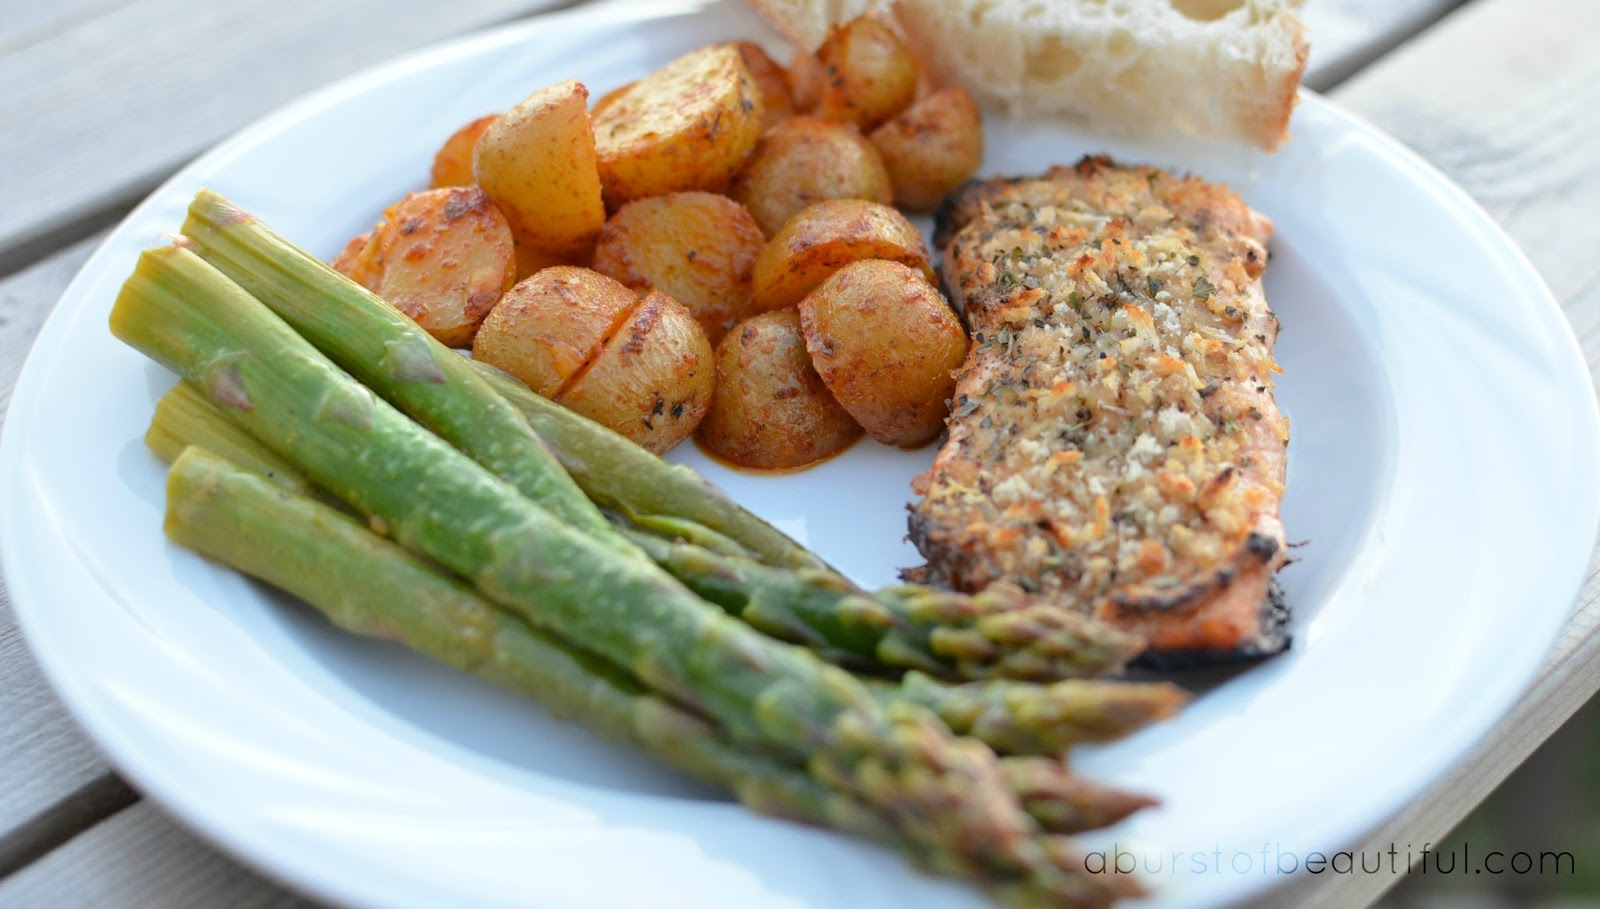 BBQ_MAPLE_DIJON_SALMON_LEMON_PAPRIKA_POTATOES_ASPARAGUS